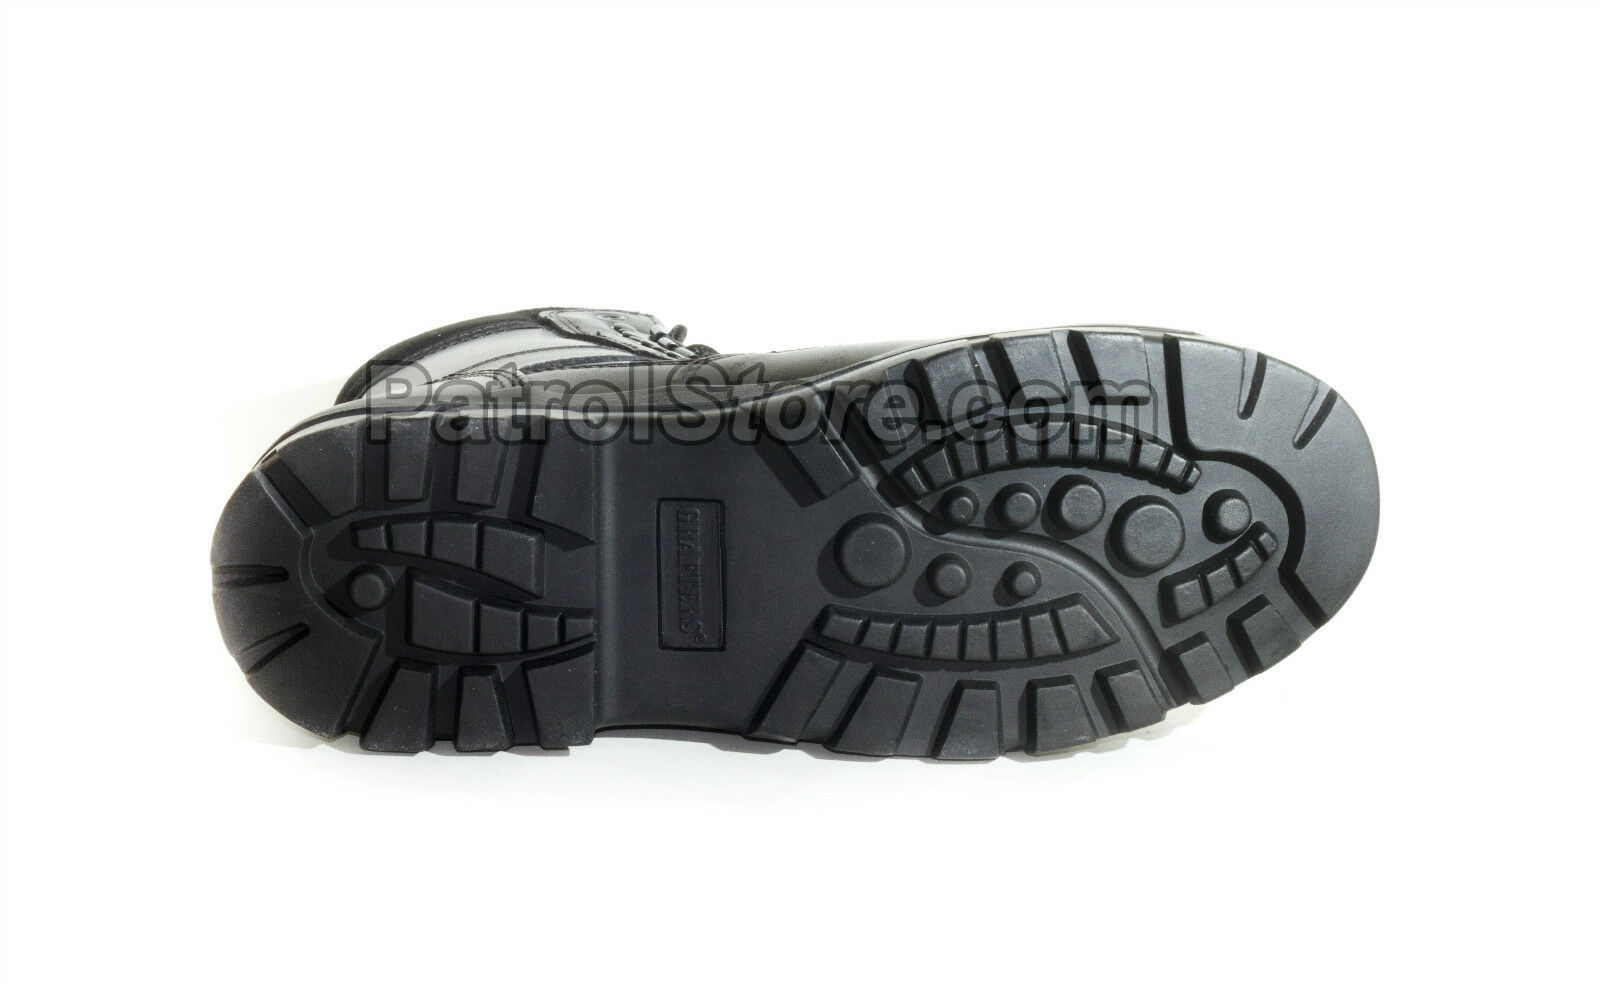 Grafters Grafters Grafters TOP GUN - 8 pollici In Pelle Polizia Boot M671A ed241a